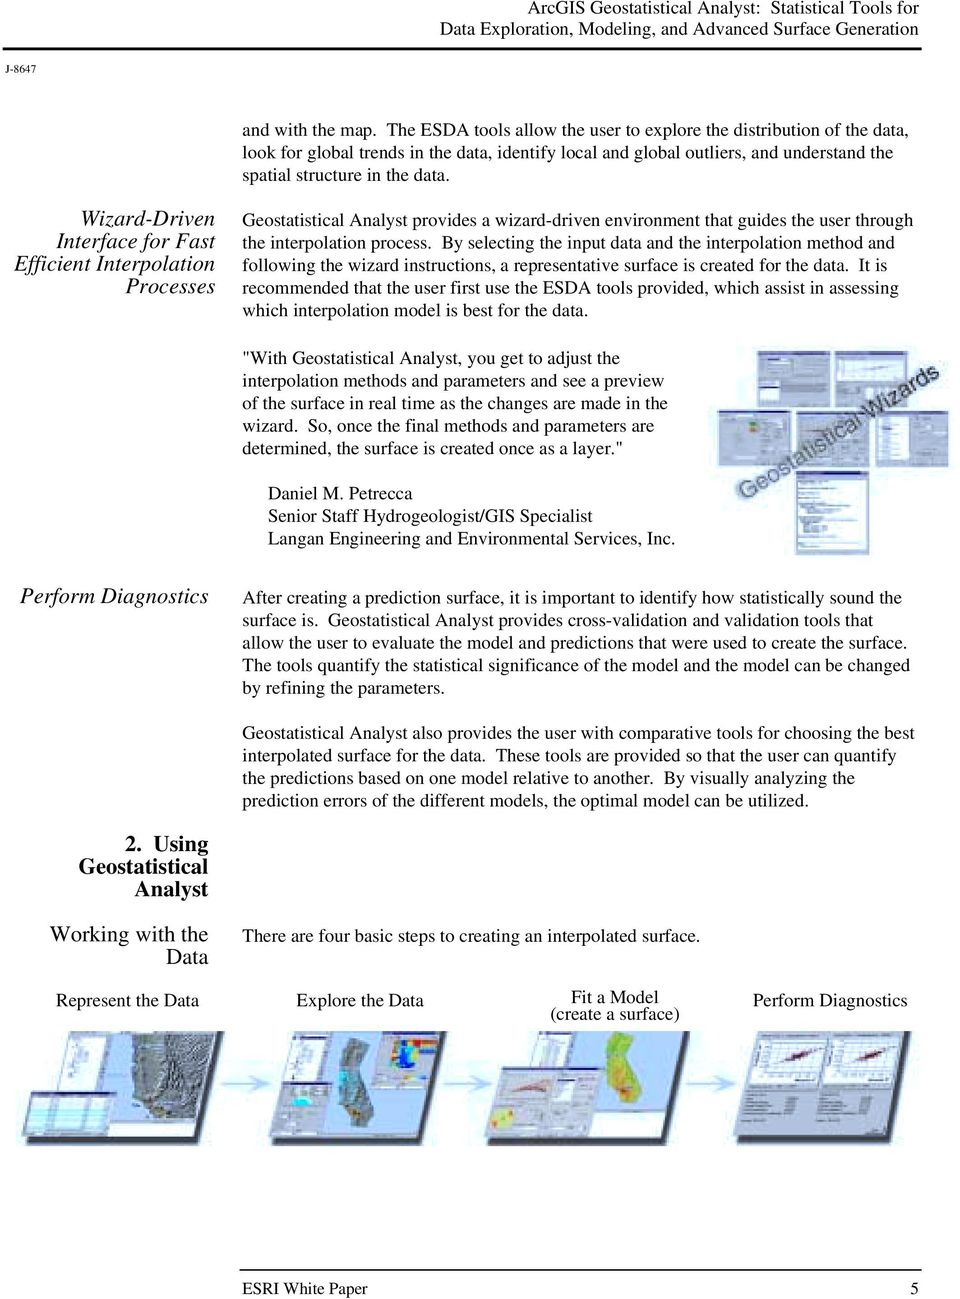 ArcGIS Geostatistical Analyst: Statistical Tools for Data